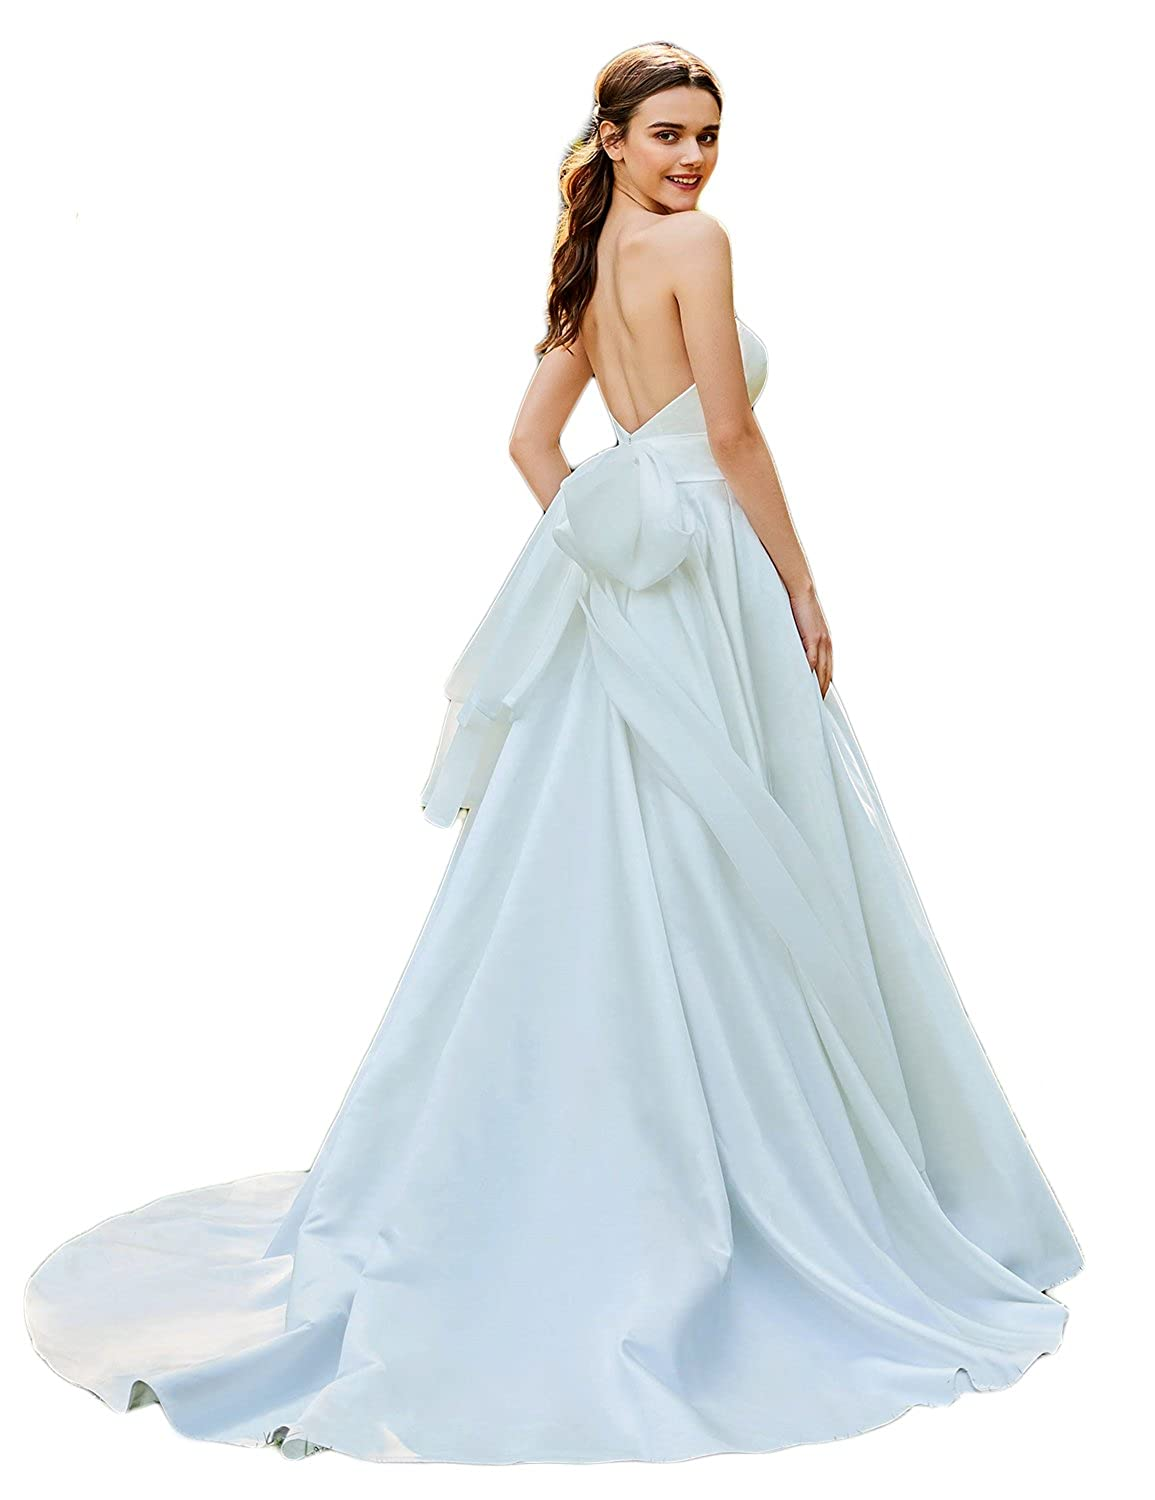 Elinadress Womens Strapless Satin Wedding Dress With Bowknot Long A